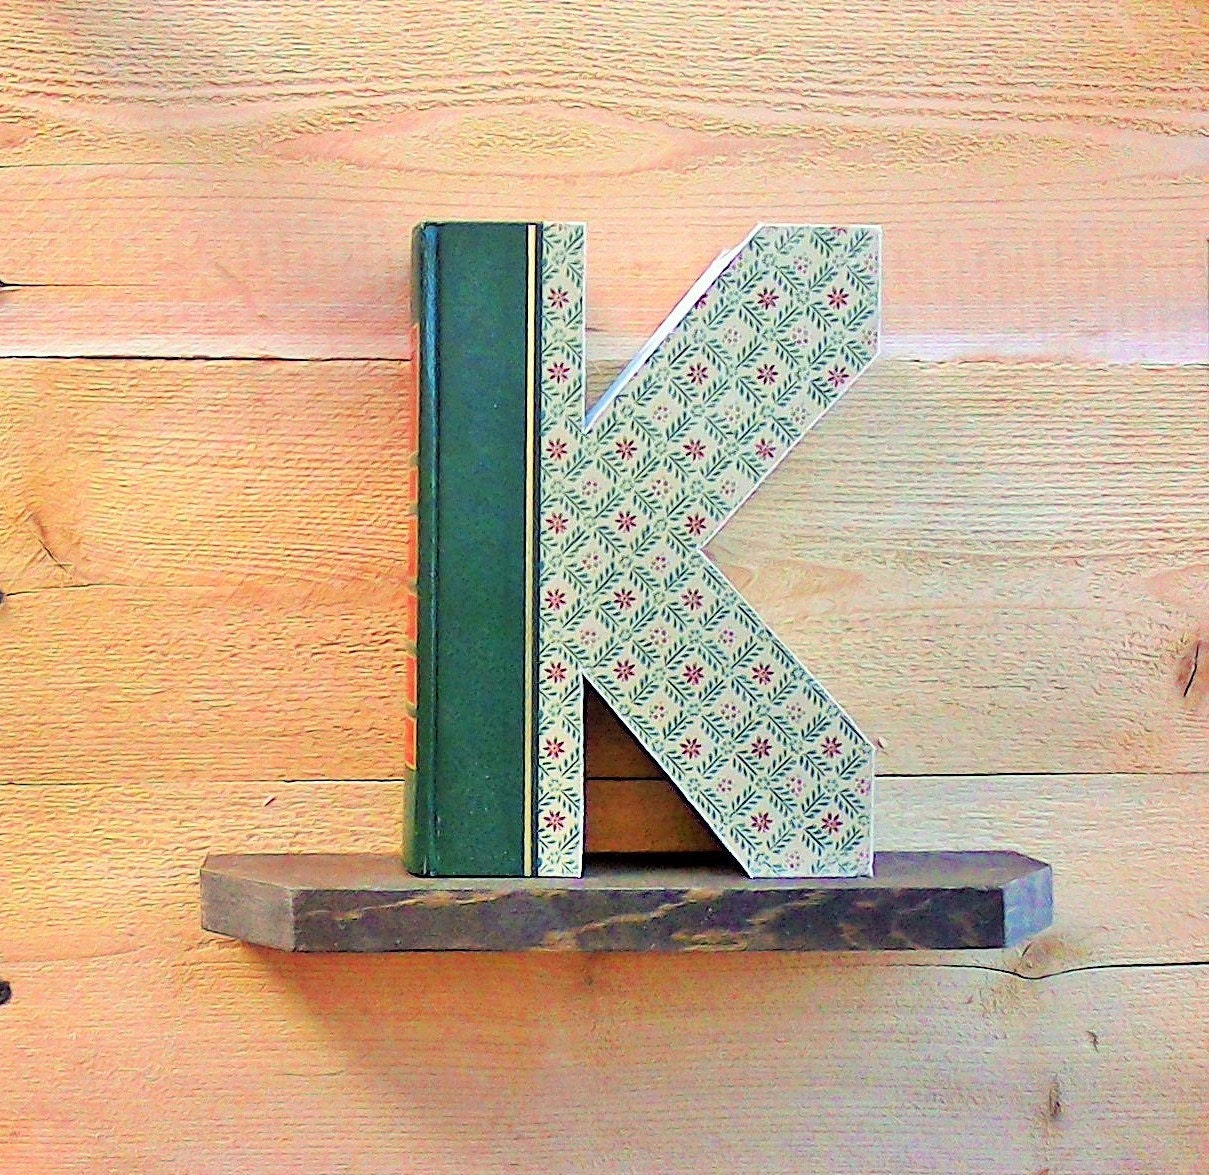 Book letter k 344ady made letters cut letter books zoom spiritdancerdesigns Gallery